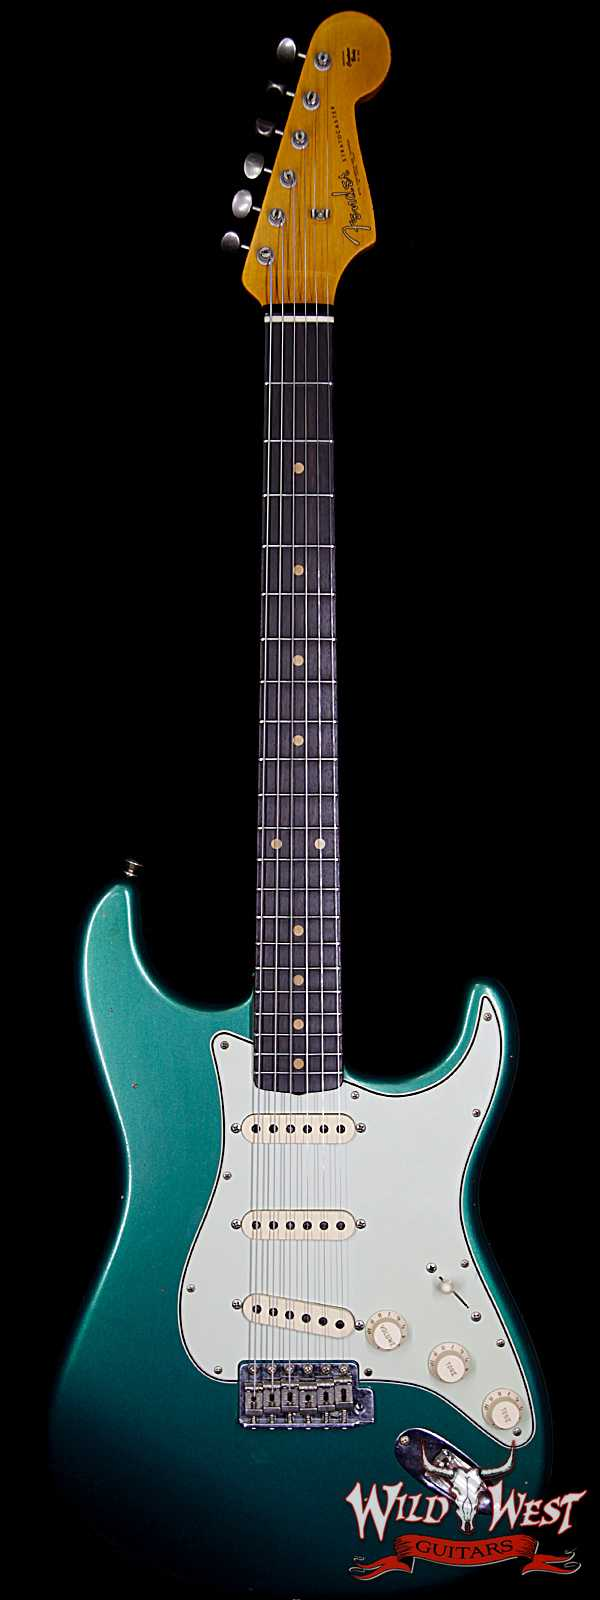 Fender Custom Shop 1961 Stratocaster Journeyman Relic with Dirty Neck British Racing Green